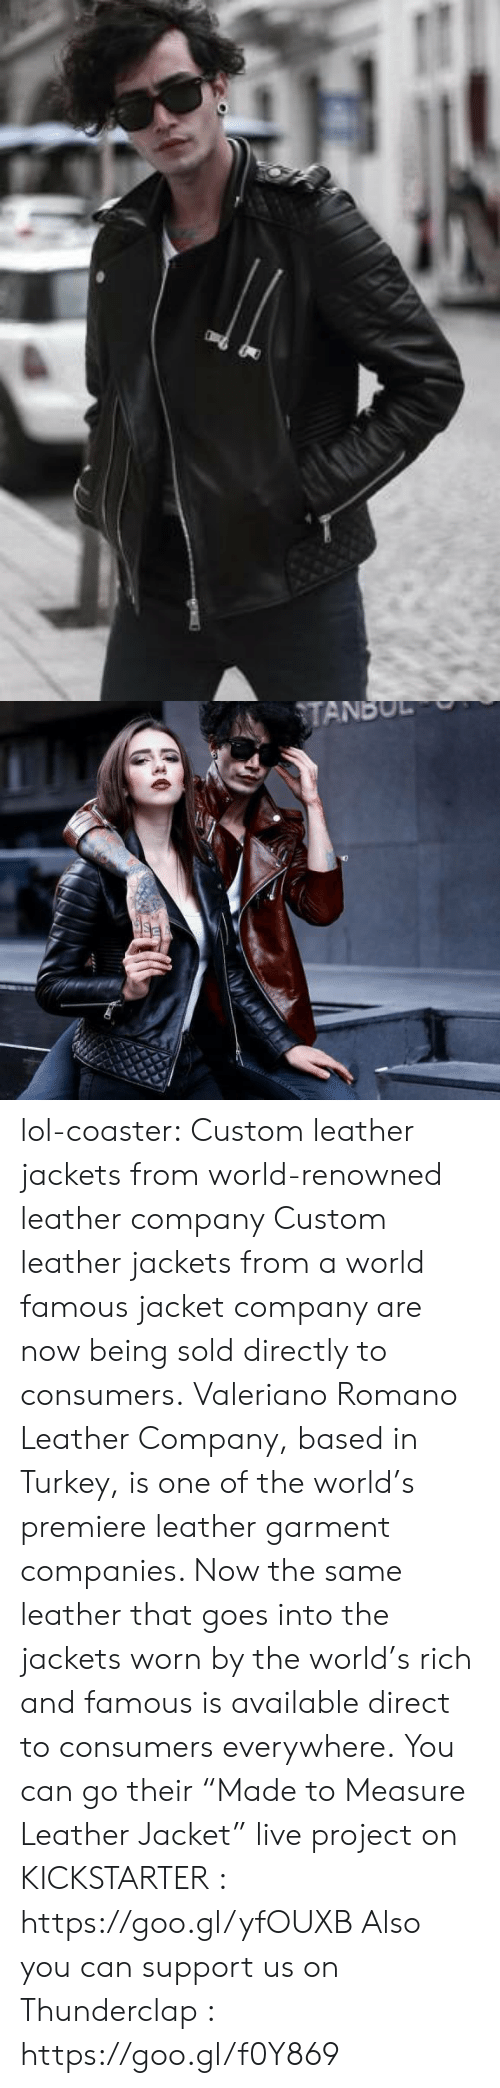 """Lol, Tumblr, and Blog: TANBUL lol-coaster:  Custom leather jackets from world-renowned leather company Custom leather jackets from a world famous jacket company are now being sold directly to consumers. Valeriano Romano Leather Company, based in Turkey, is one of the world's premiere leather garment companies. Now the same leather that goes into the jackets worn by the world's rich and famous is available direct to consumers everywhere. You can go their """"Made to Measure Leather Jacket"""" live project on KICKSTARTER : https://goo.gl/yfOUXB Also you can support us on Thunderclap : https://goo.gl/f0Y869"""